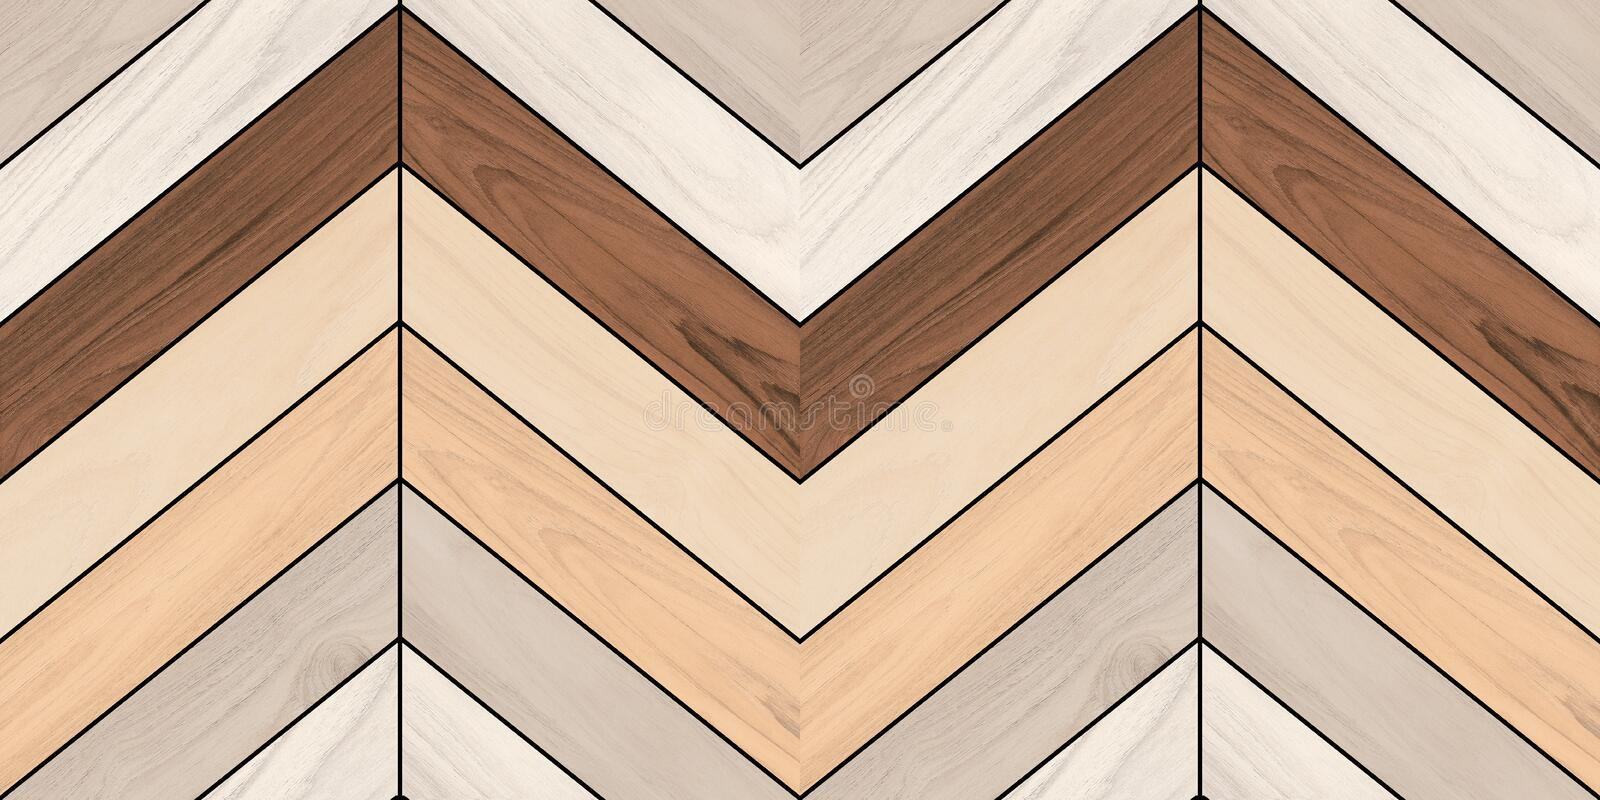 Wave pattern decor wooden wall background royalty free stock photos